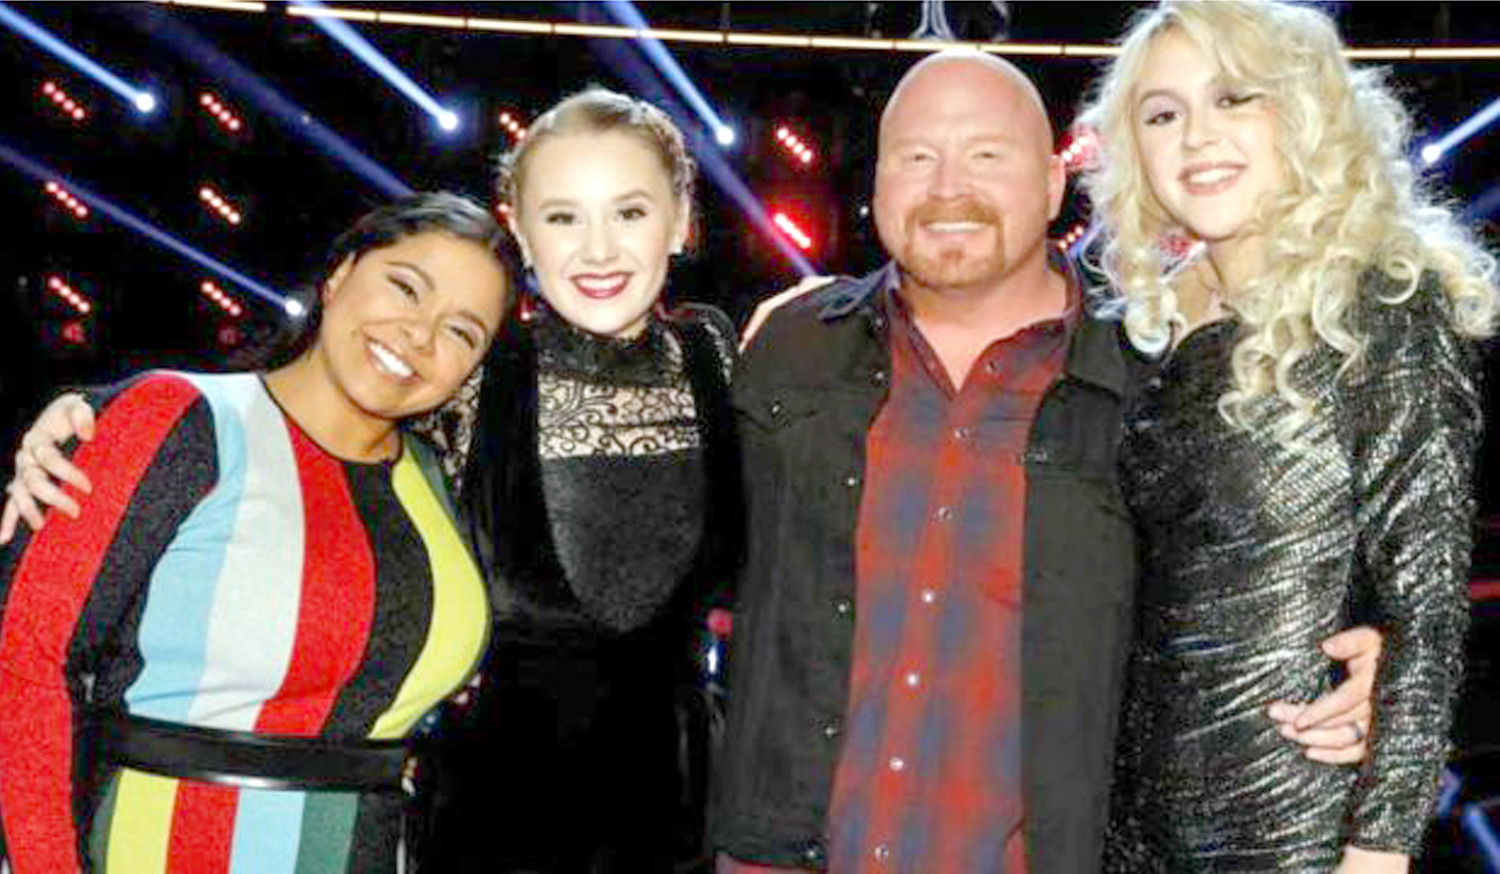 "THESE FOUR SINGERS will be competing for a recording contract next week in the finals of the national singing competition ""The Voice."" Former Lee University student Brooke Simpson, left, was one of the four to advance Tuesday night. The other three finalists, from left, include Addison Agen, Red Marlow, and Chloe Kohanski."